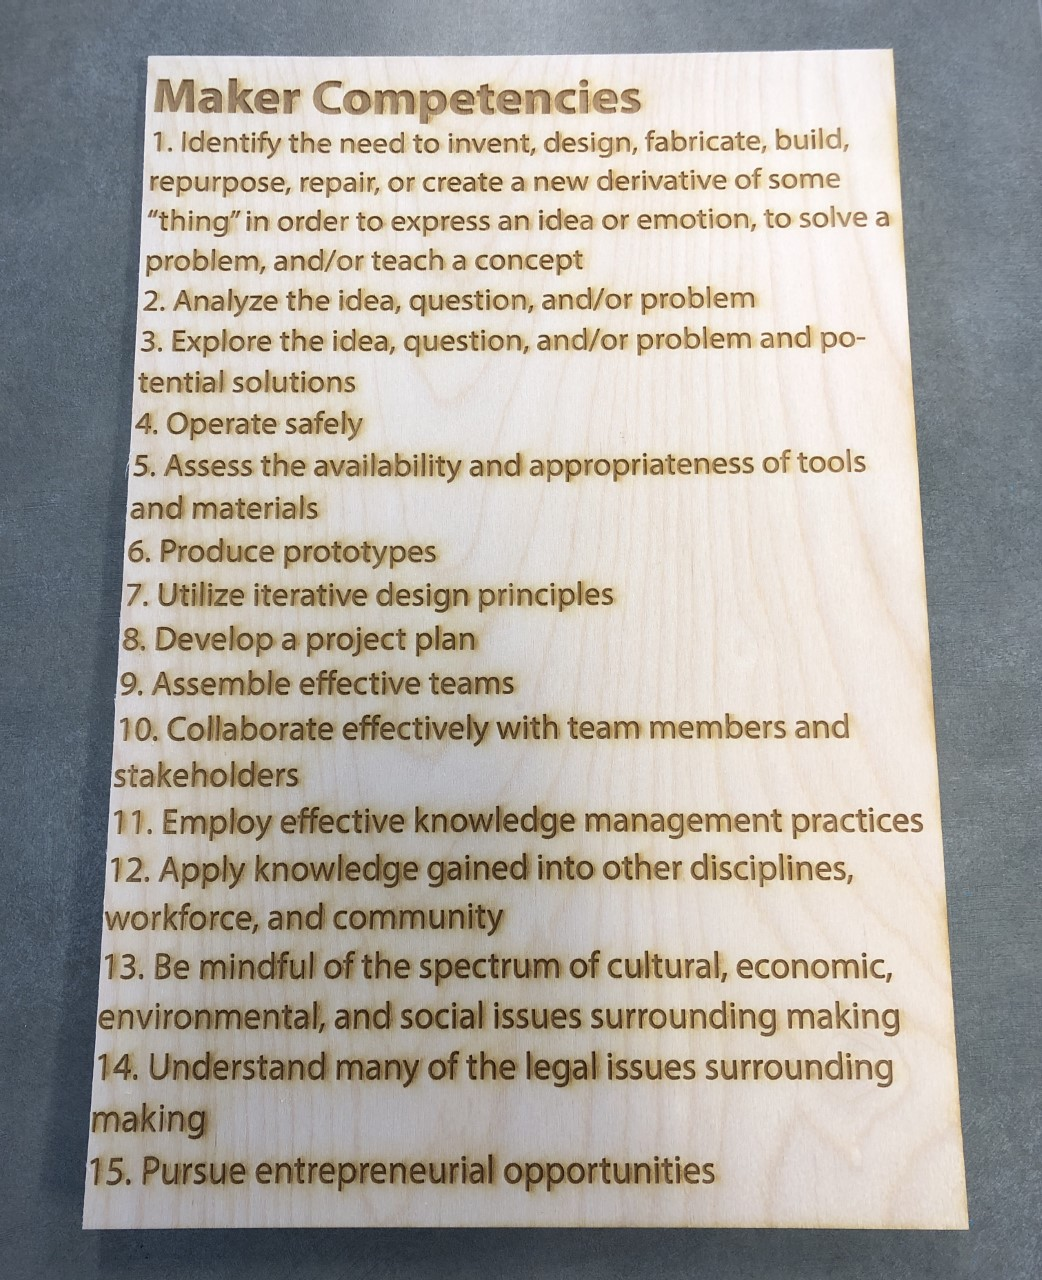 Maker Competencies Engraved on Wood